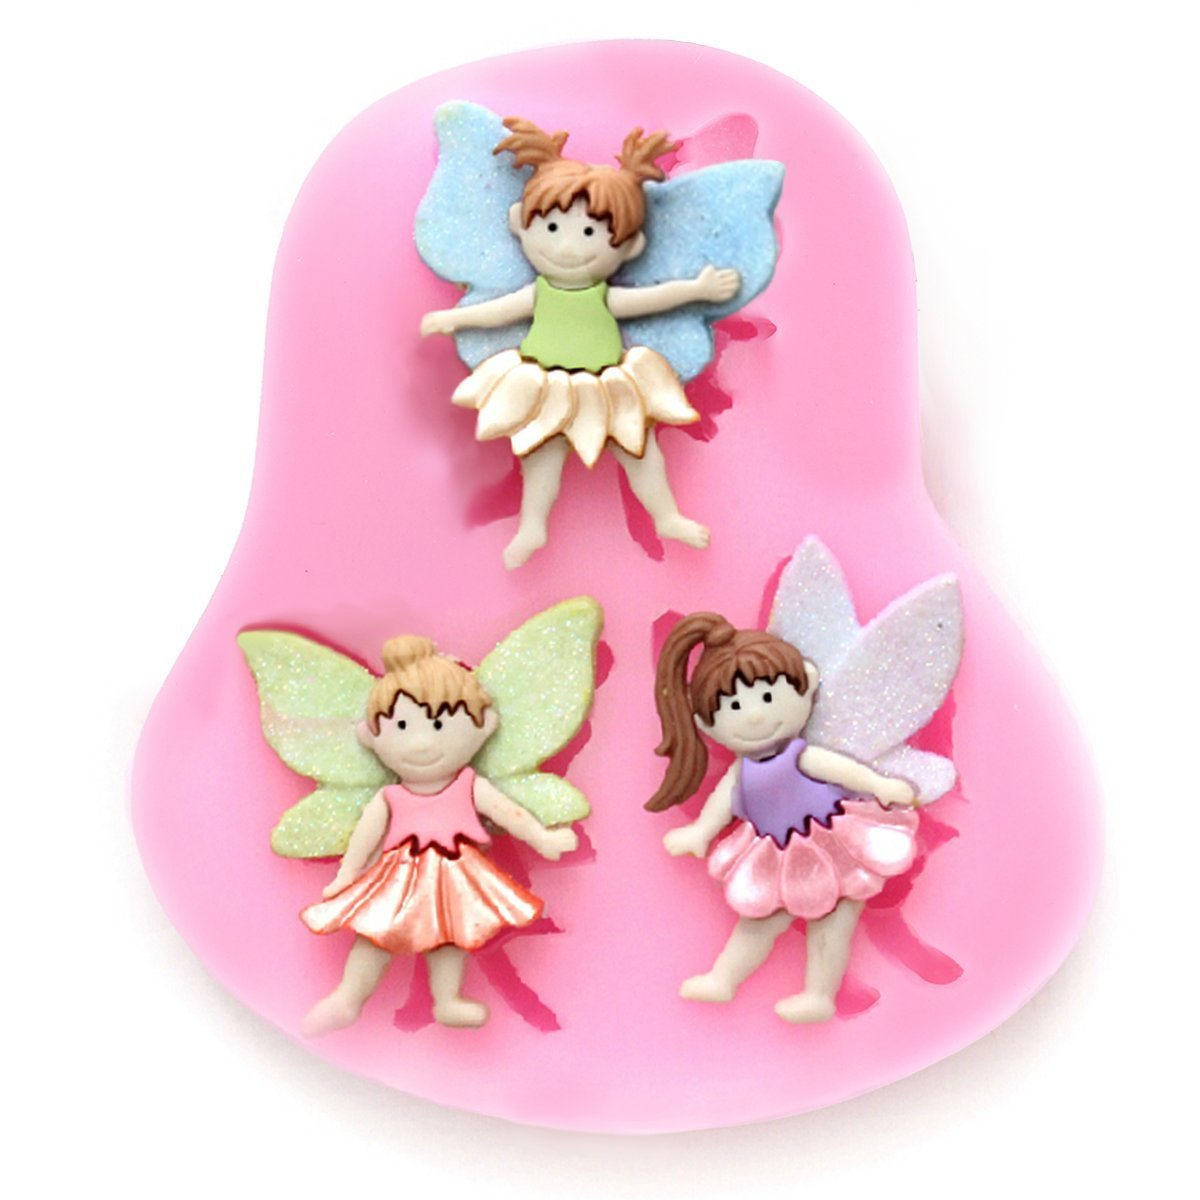 Da.Wa Moulds Cake Mold Food Silicone 3 Angels Shape Fondant Decor Mould Cutter Sugar Chocolate Cake Fondant Mold Kitchen Baking Tools